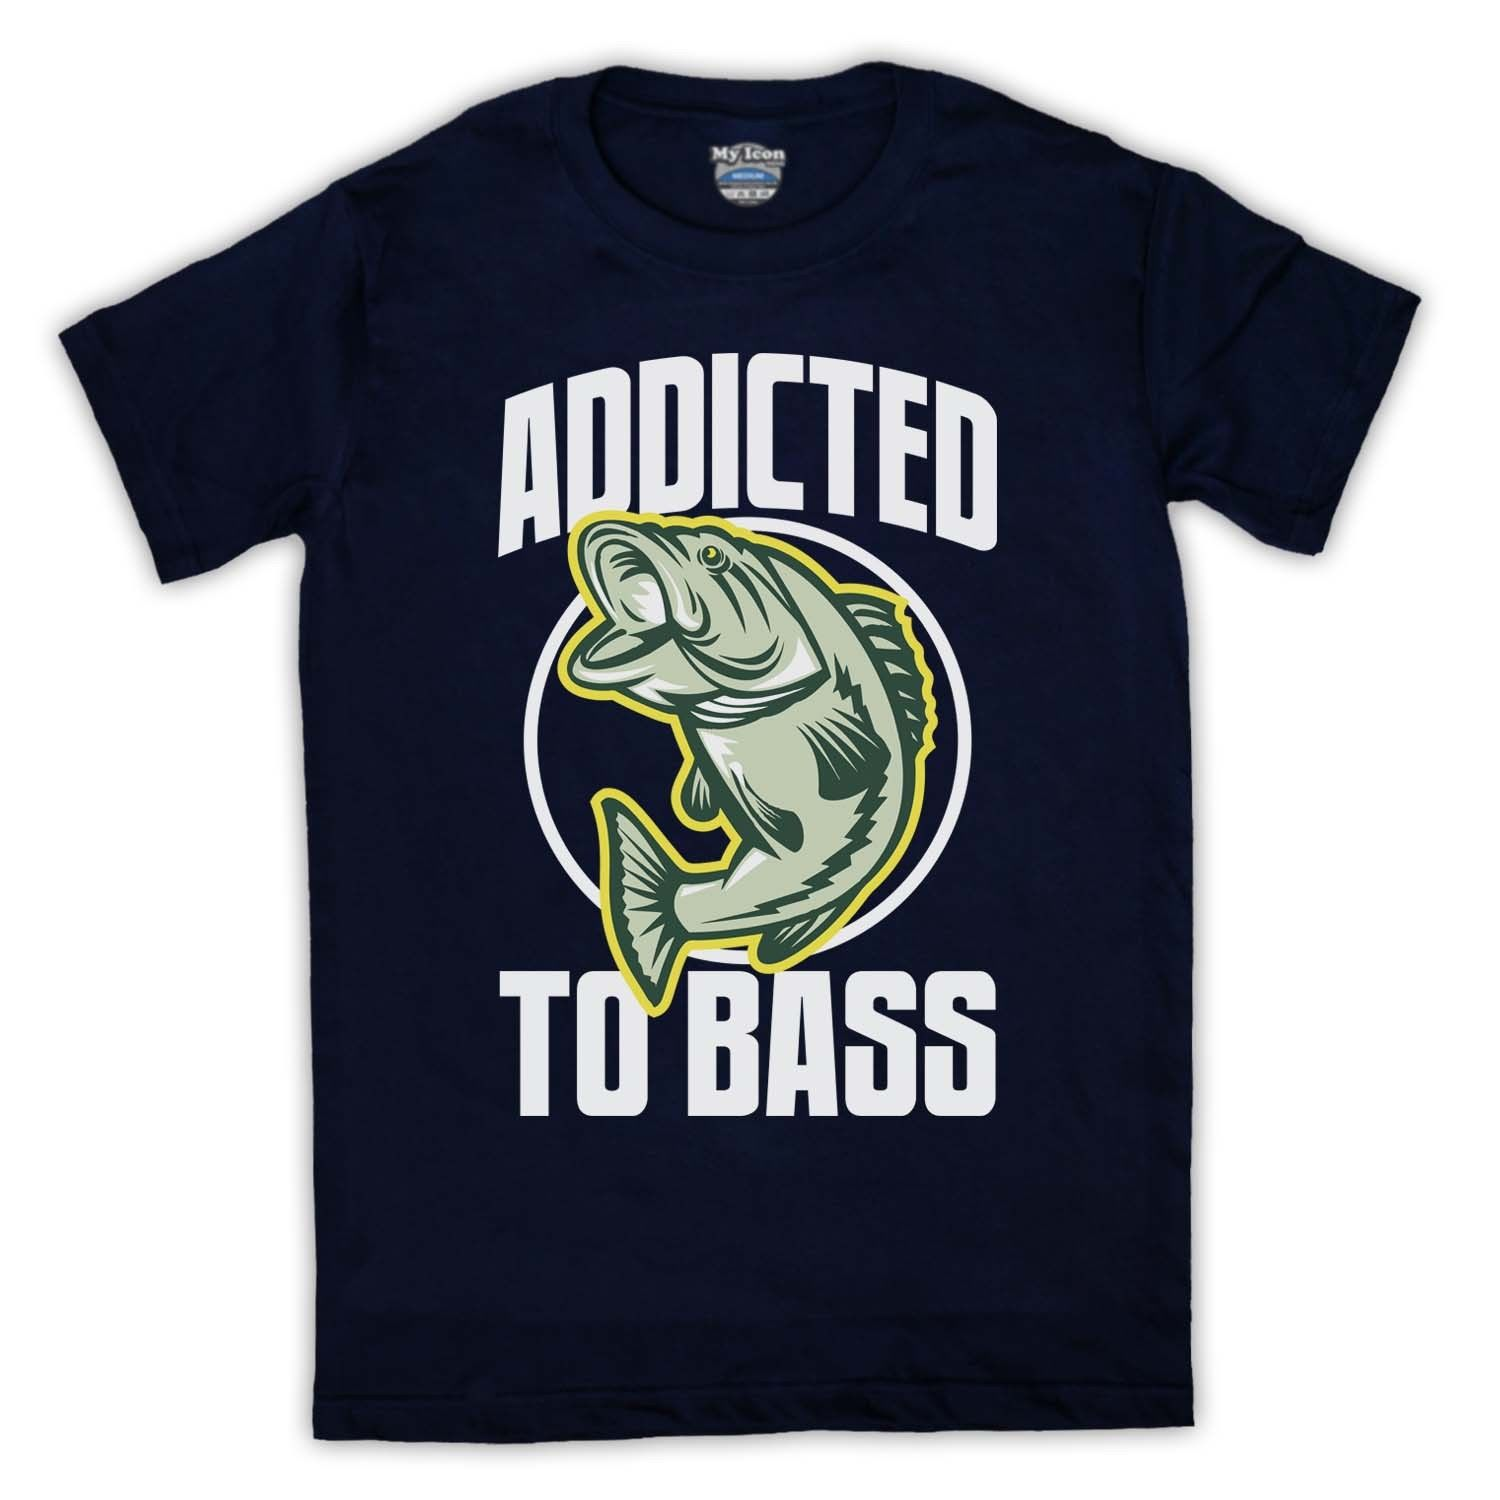 ADDICTED TO BASS FISHer FISHINGer COMEDY FUNNY RETRO MENS AND LADIES T SHIRT TEE Men'S O-Neck Printed Tee T Shirt Top Tee